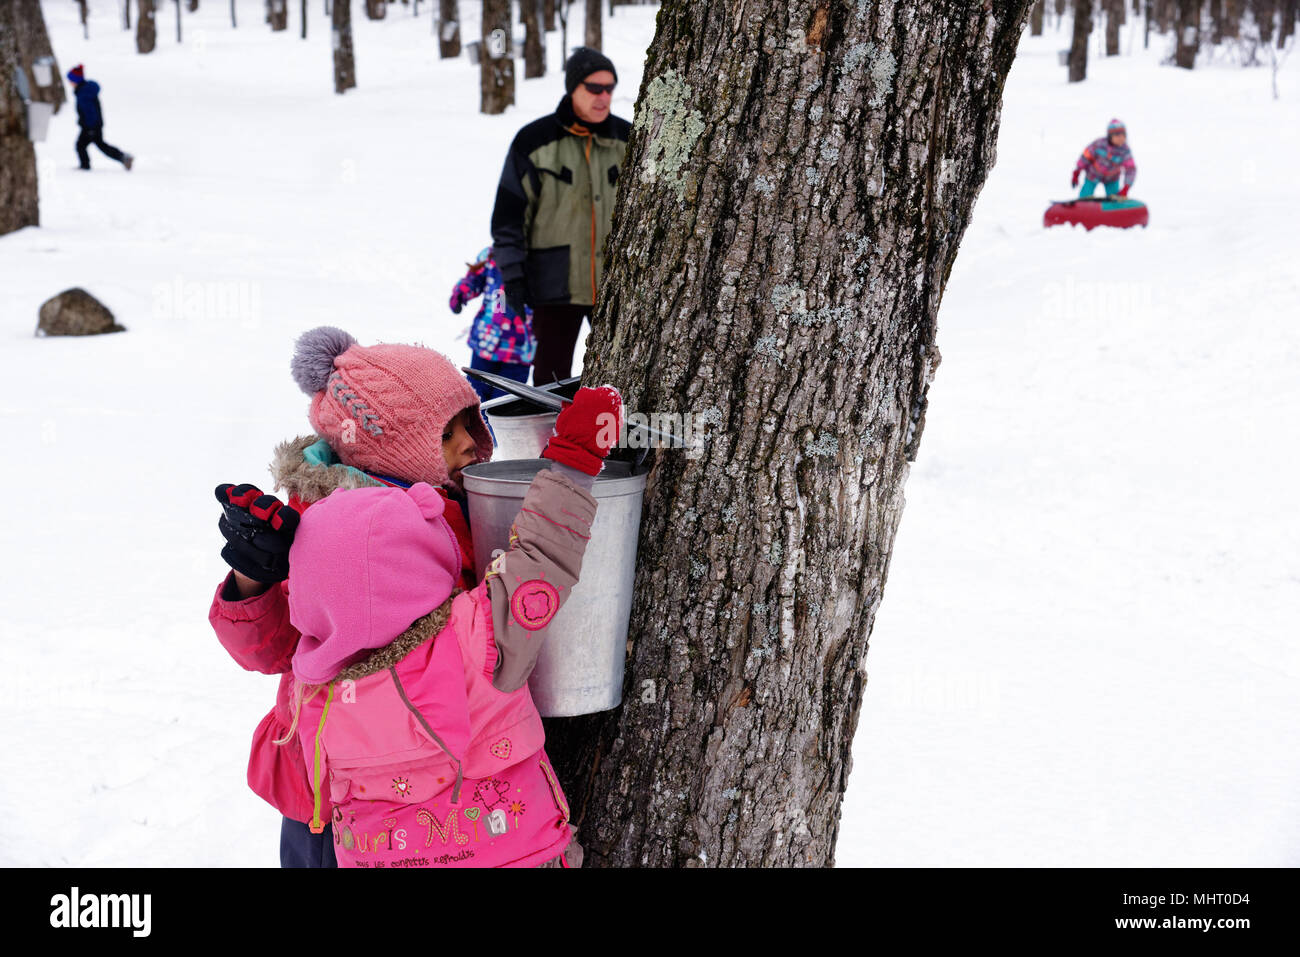 Two young girls (3 yr olds) looking inside a maple sap collecting bucket in a maple tree plantation in Quebec Canada - Stock Image